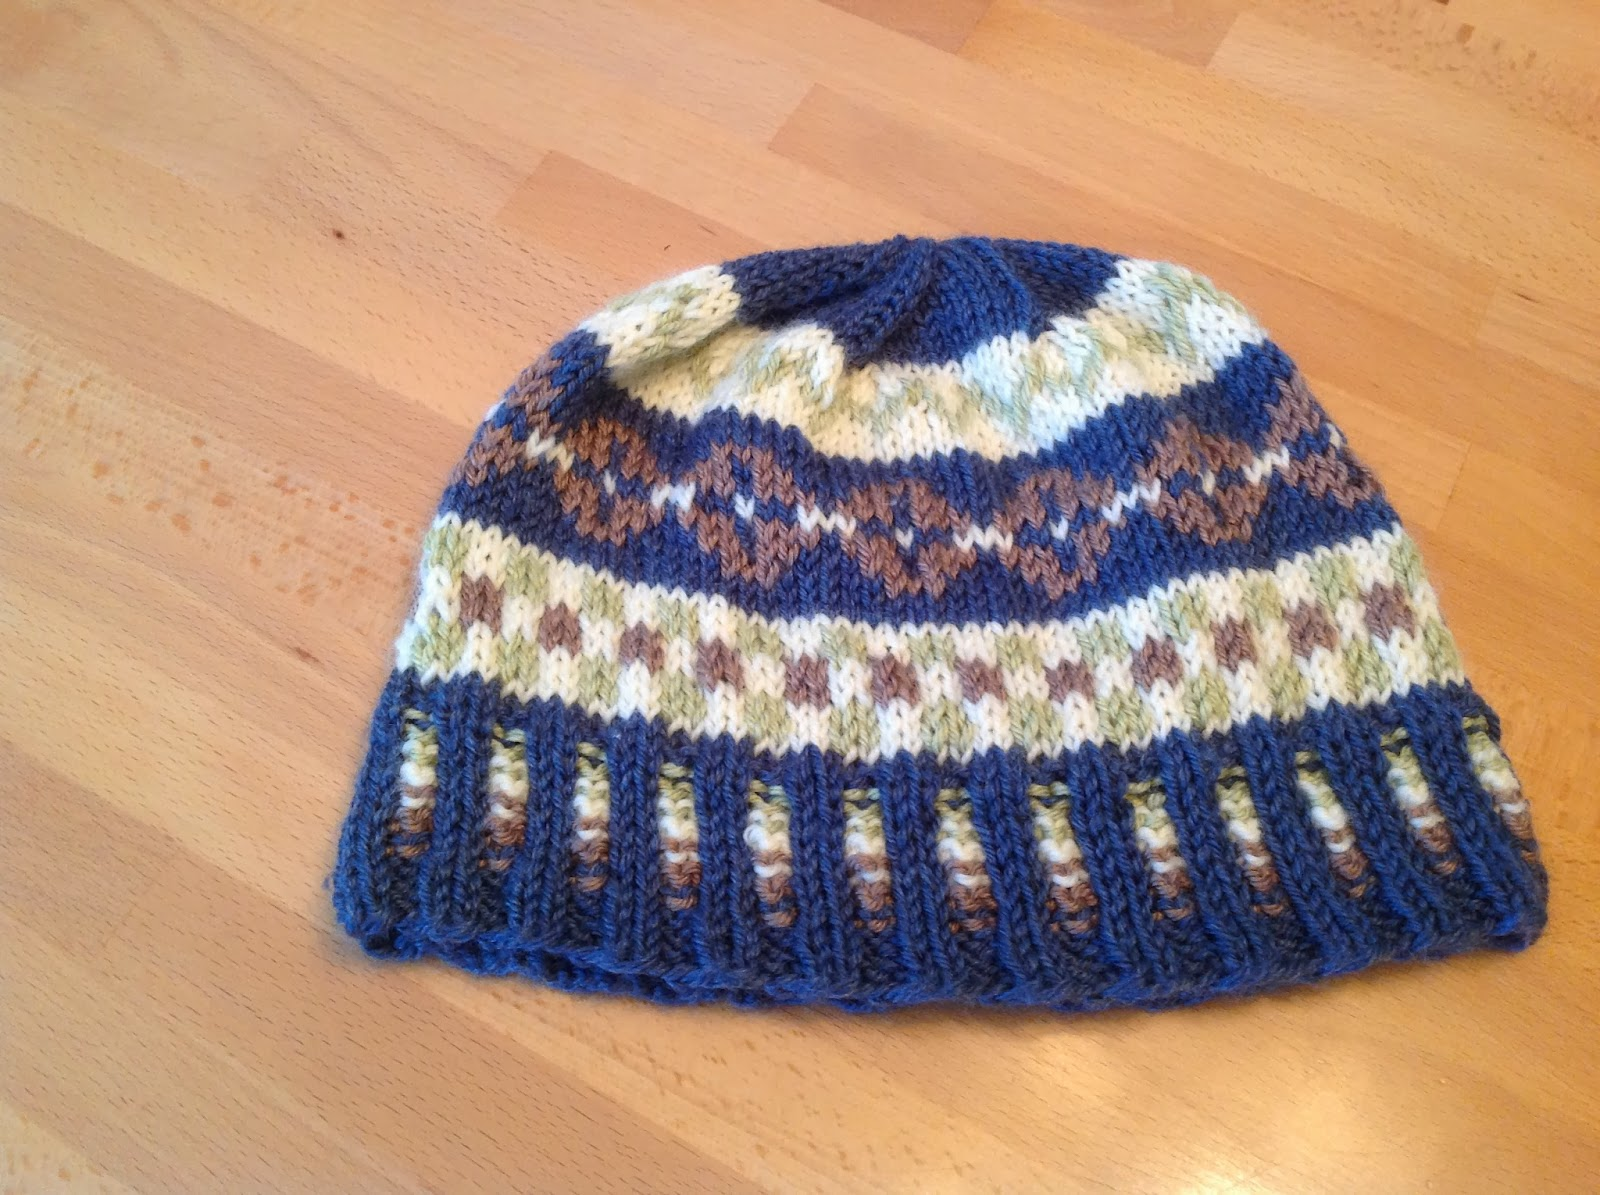 Free Fair Isle Knitting Patterns Hats : Honeycomb Stitches & Peppermint Tea: Free Fair Isle Hat Pattern